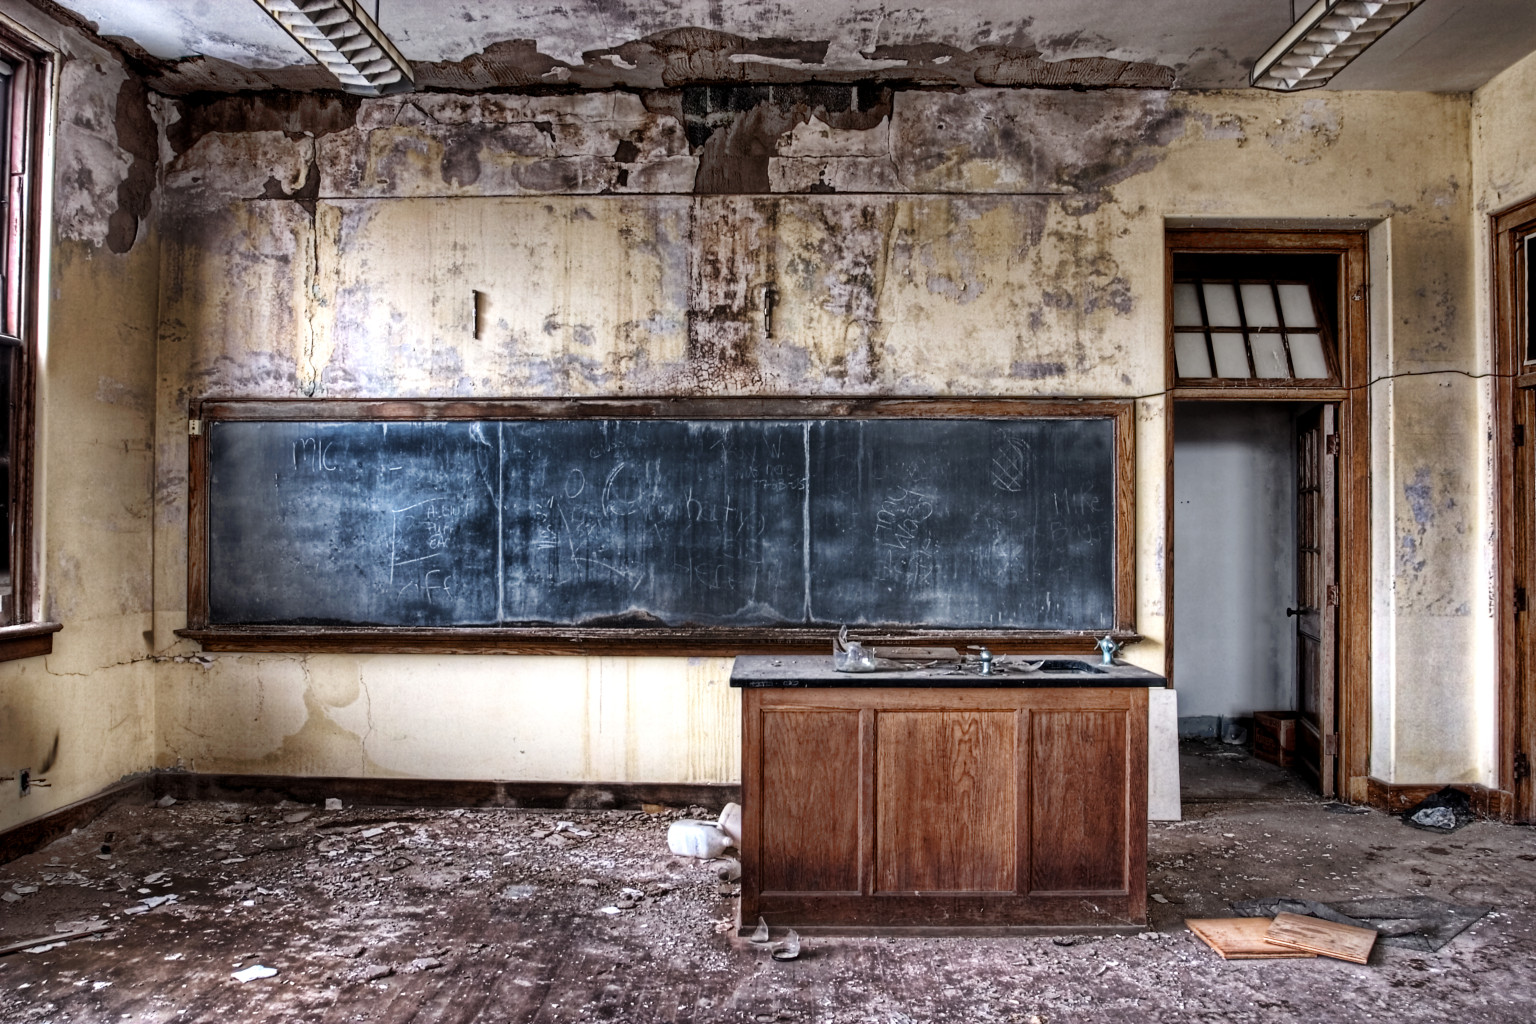 Abandoned schools in decay photos huffpost - The house in the abandoned school ...